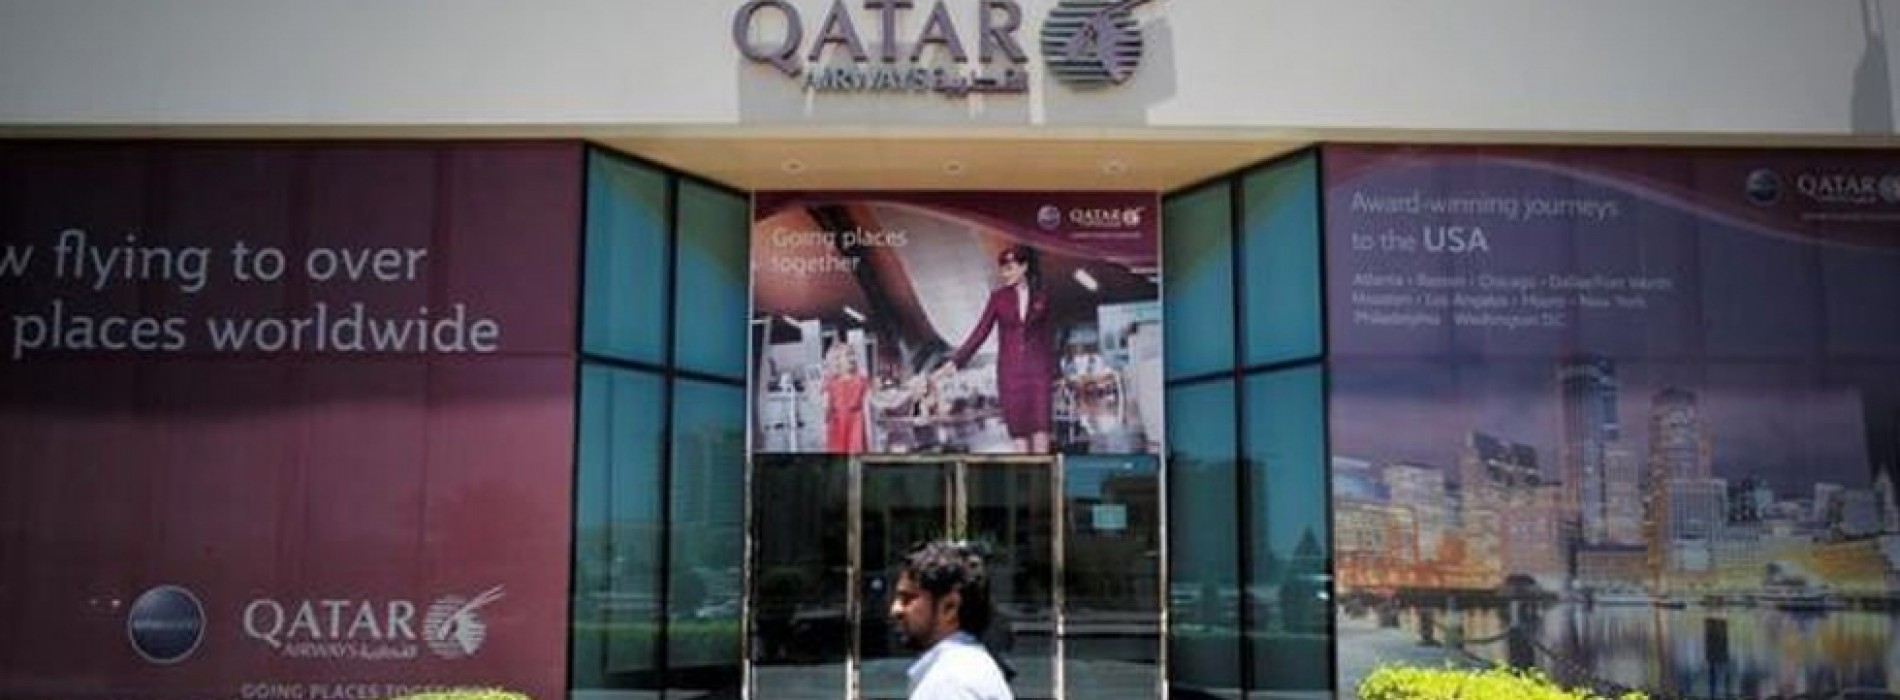 Indians in Qatar advised to stay alert, modify travel plans